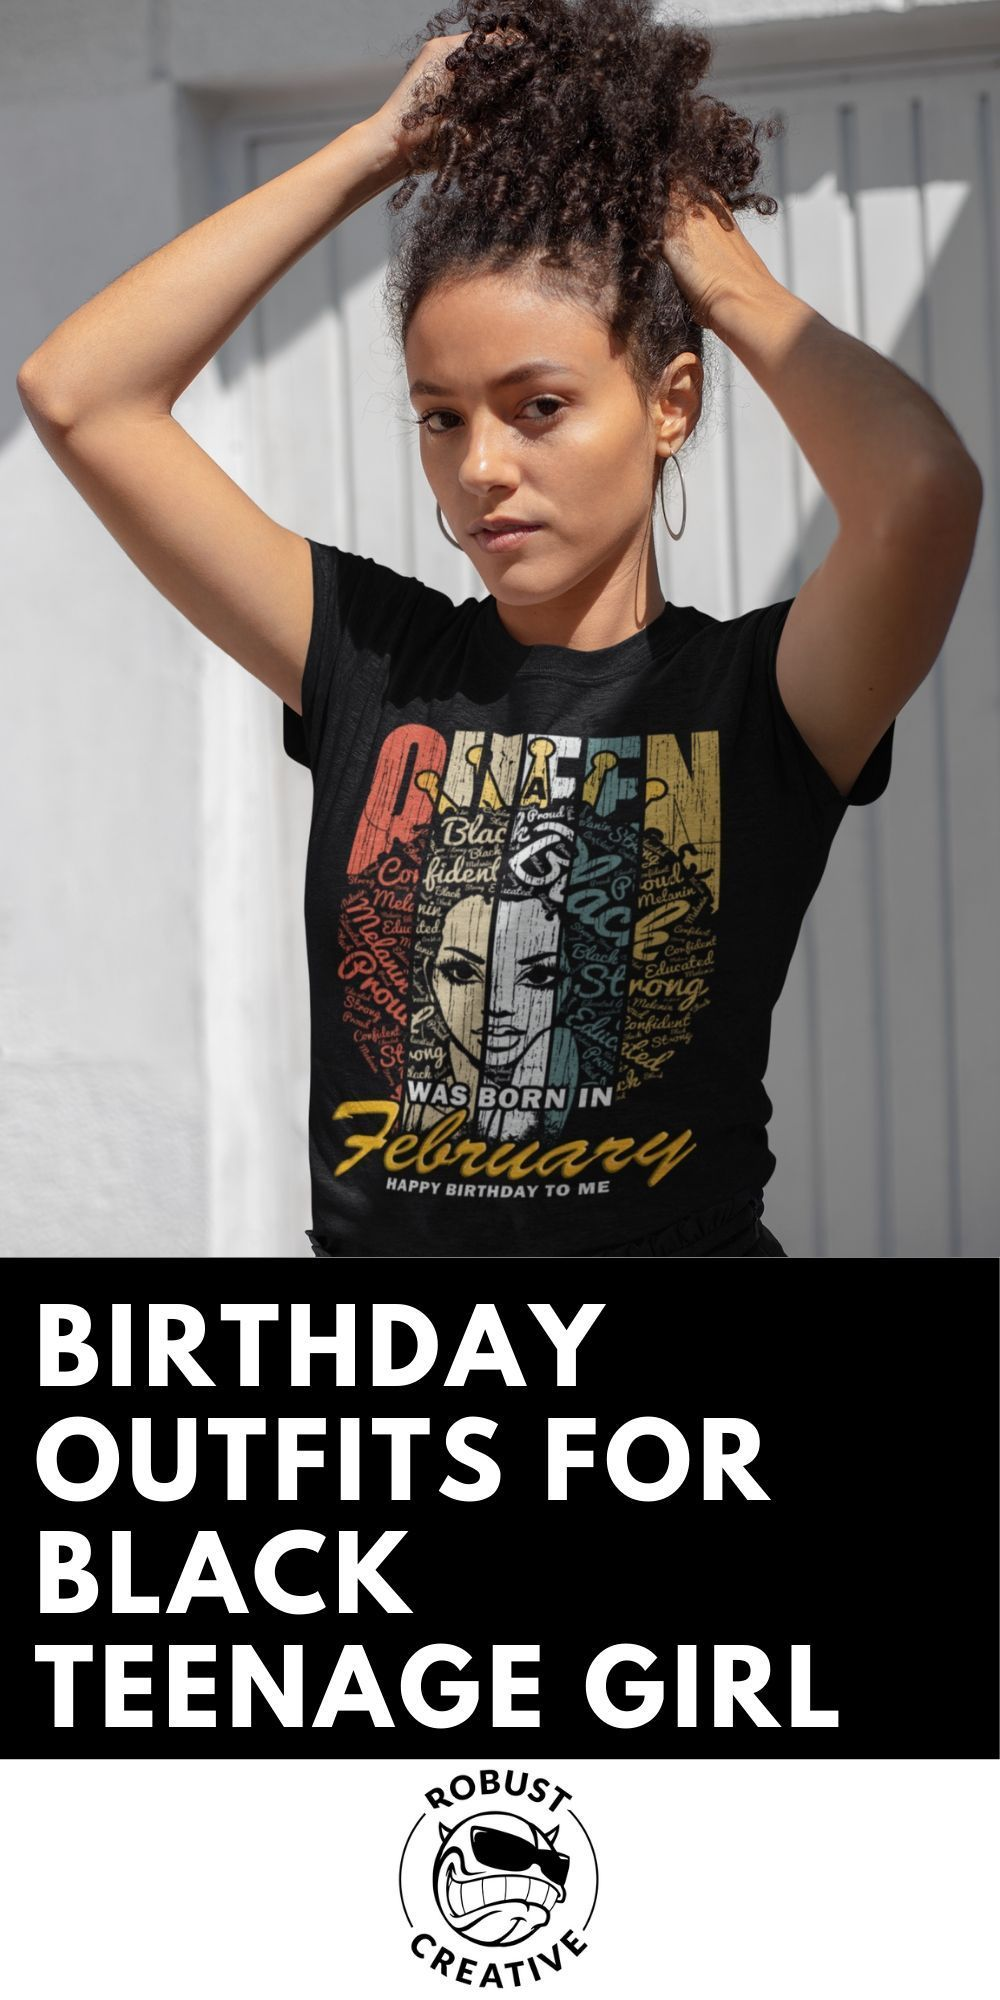 Pin on Birthday Outfit Ideas & Gifts